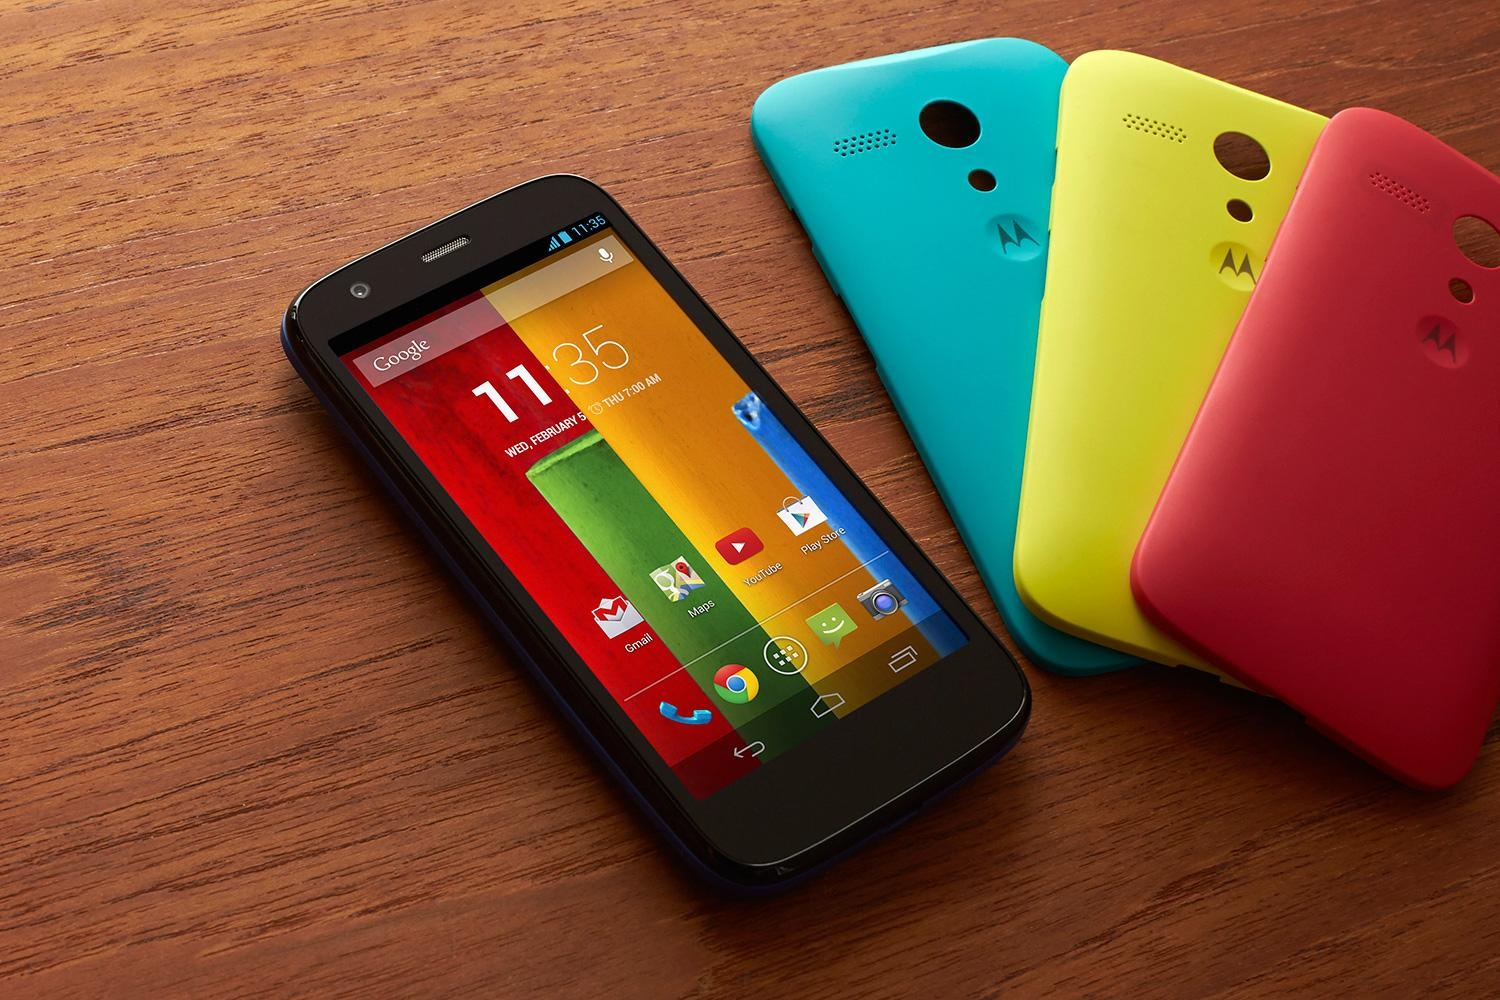 The 8 Differences Between The Moto Gs